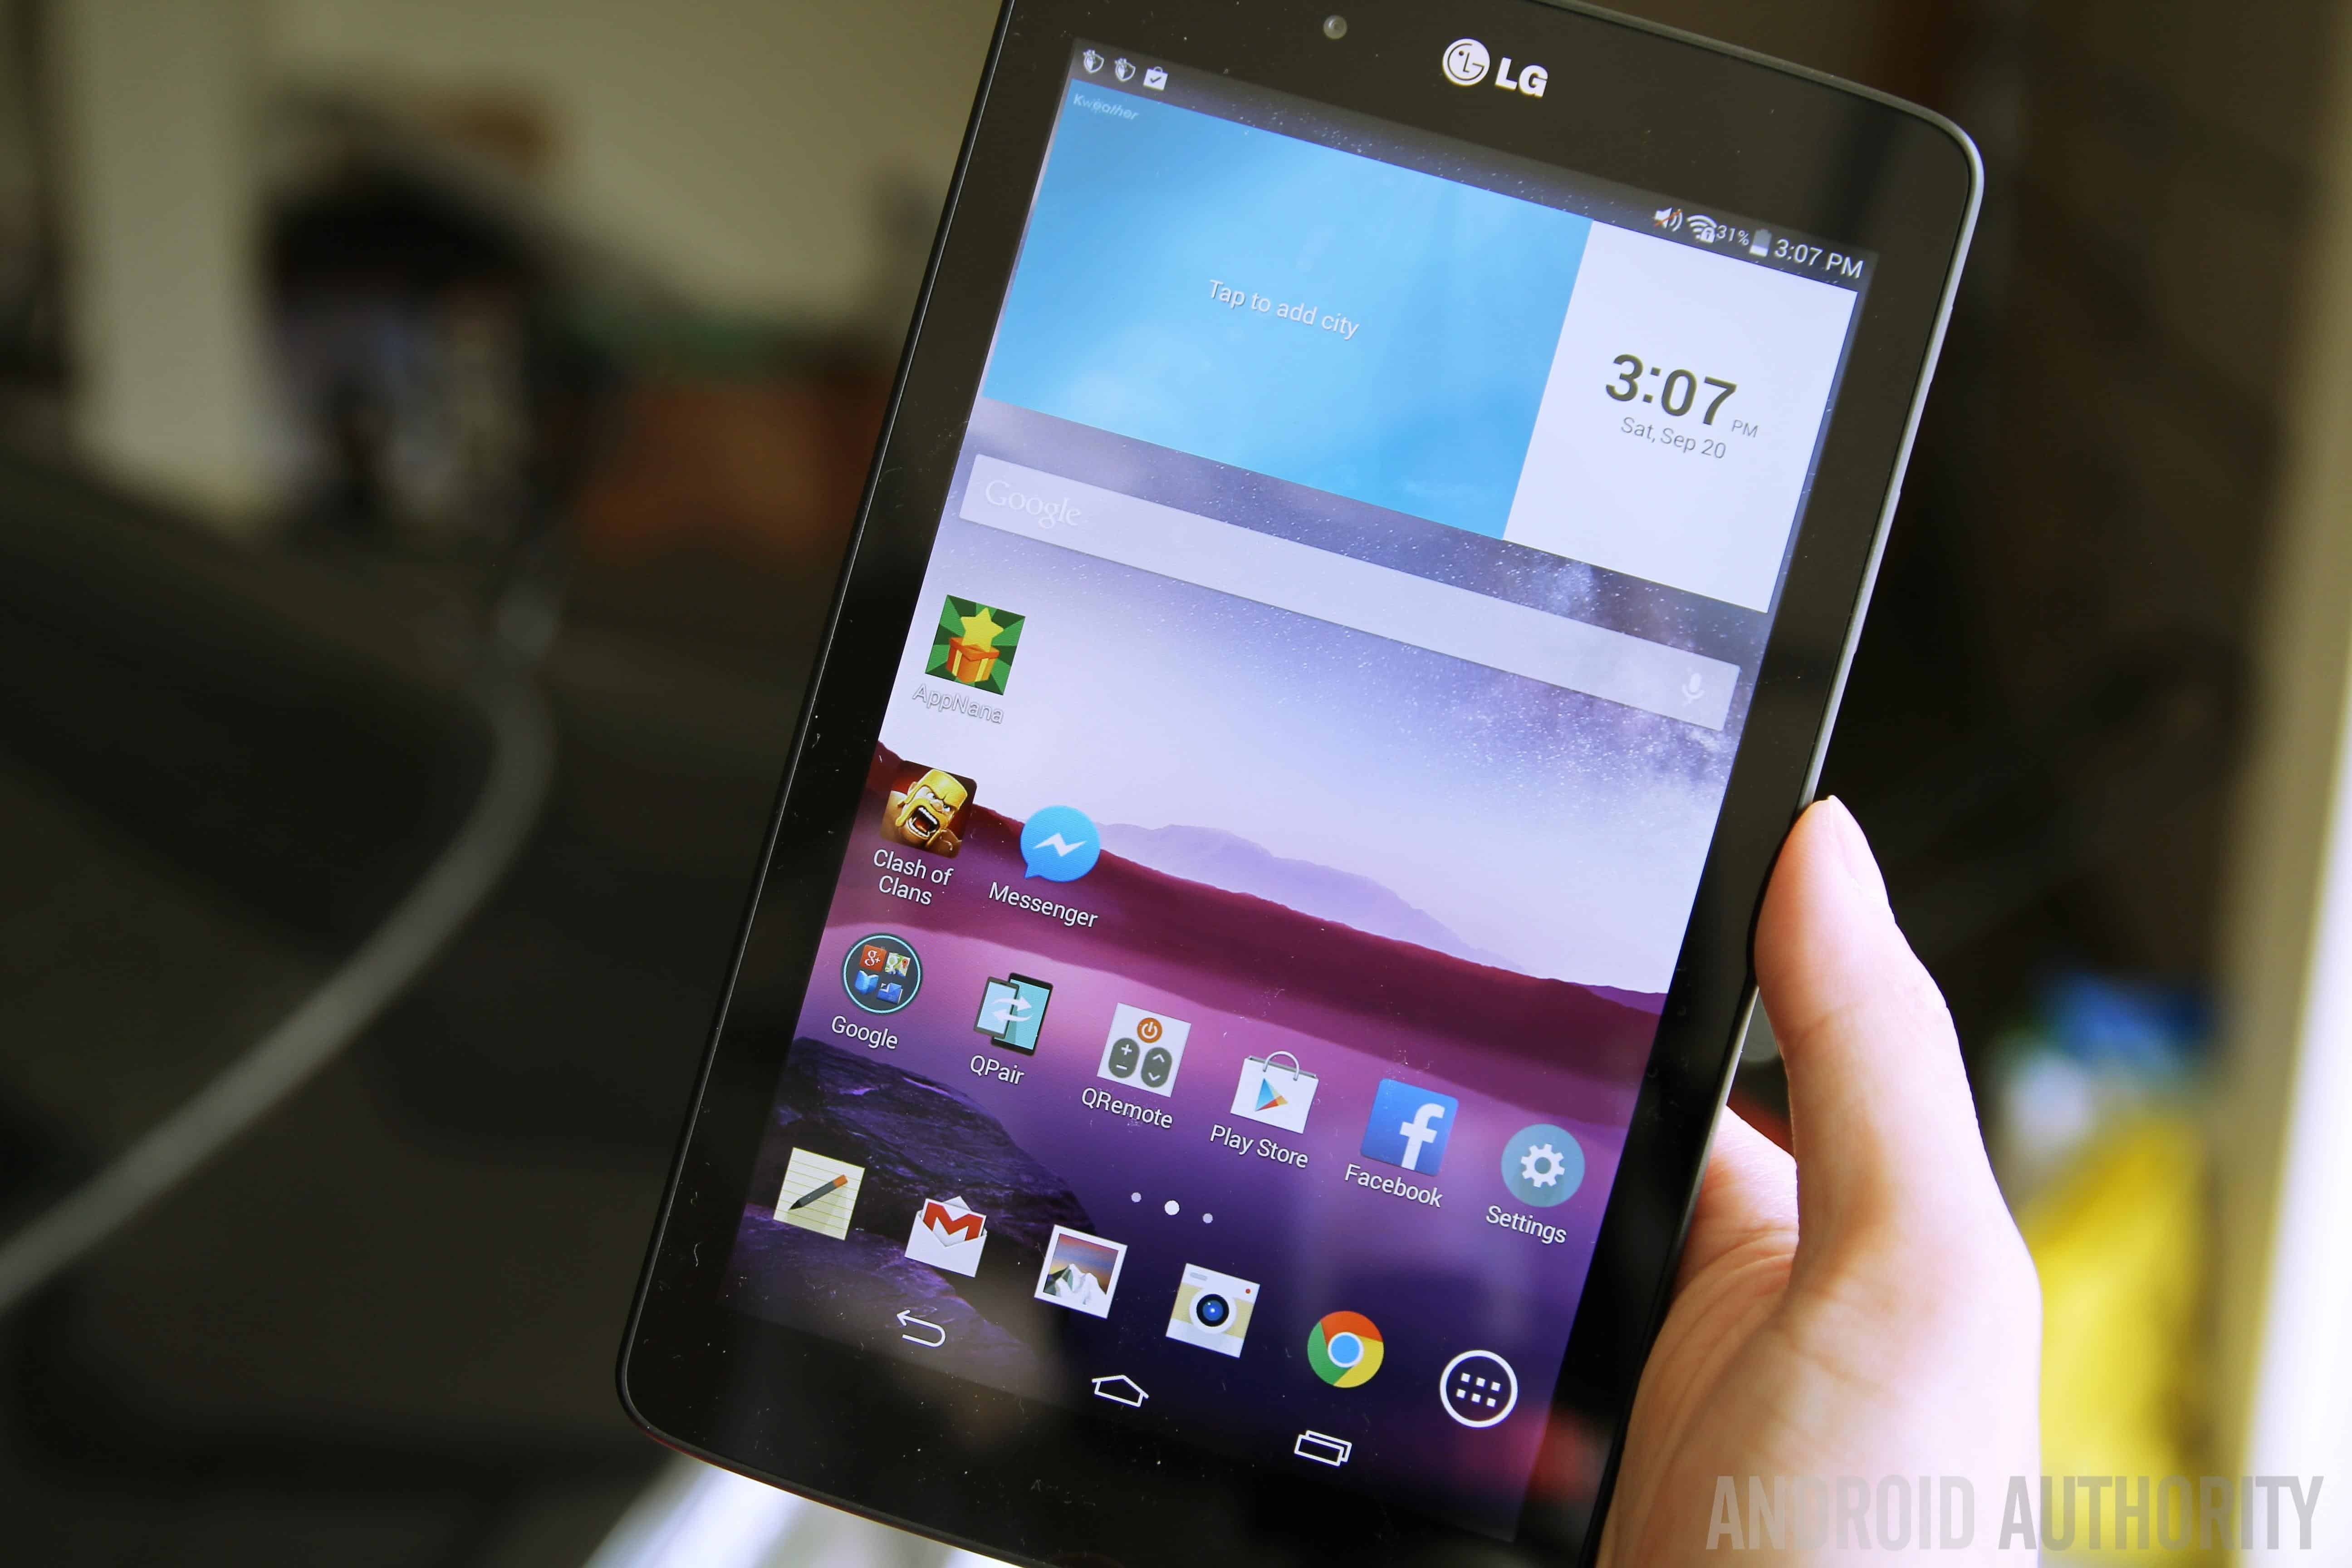 LG G Pad F 7.0 Tablet : First Android 5.0 Lollipop Tablet Introduced in the US 1